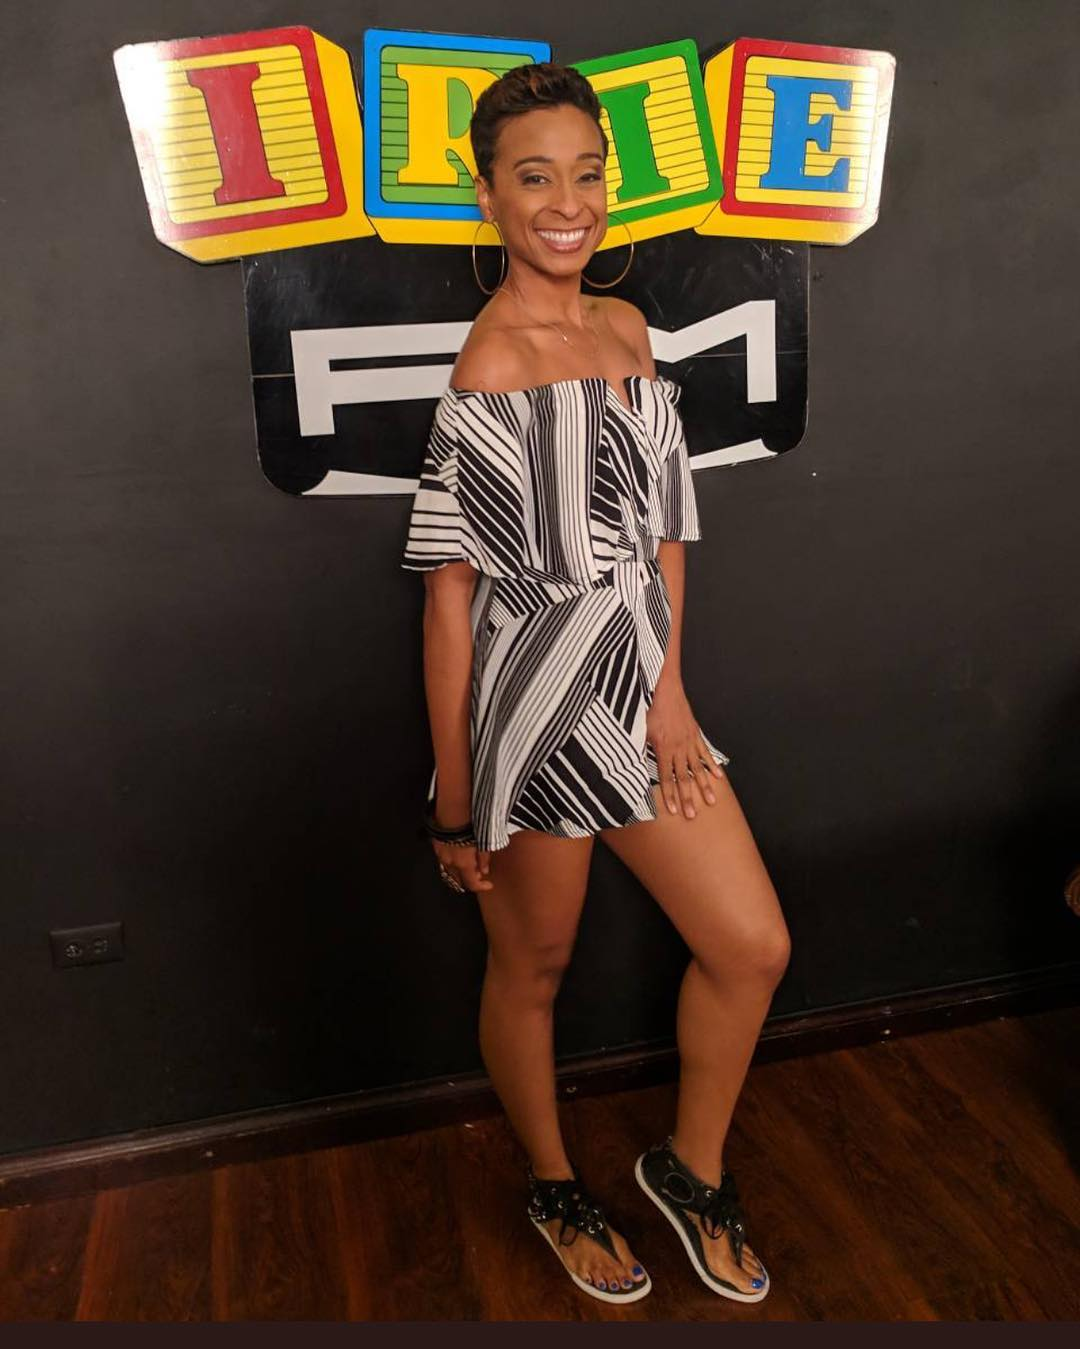 49858035 2317673195130611 1639508460369438437 n - Daddy big love: Willy Paul reveals he loves both Alaine and Nandy